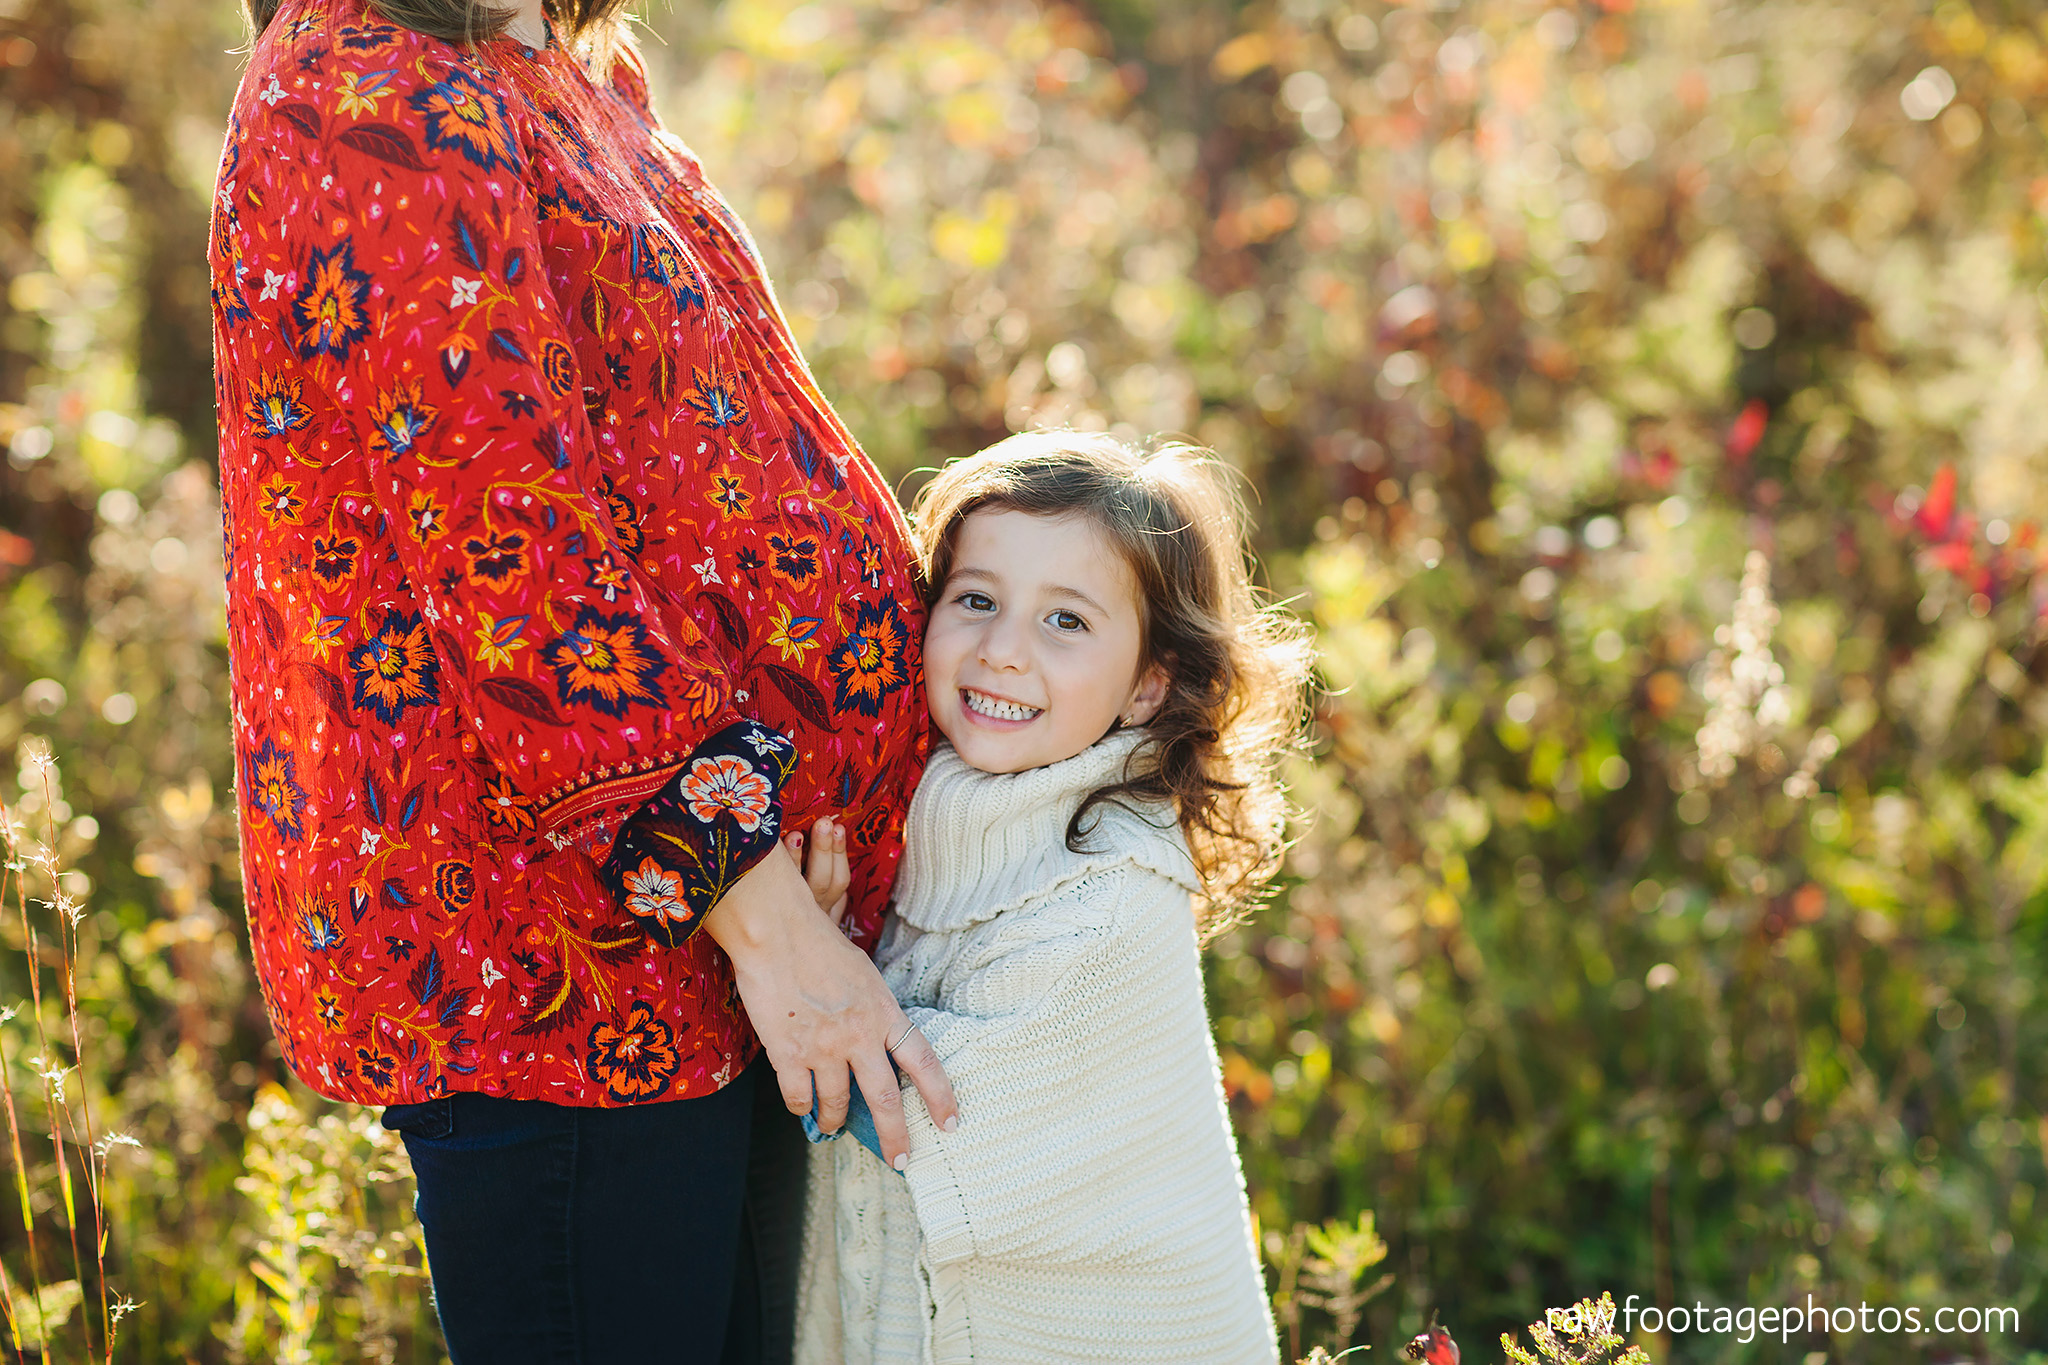 london_ontario_family_photographer-golden_hour_maternity_session-raw_footage_photography026.jpg